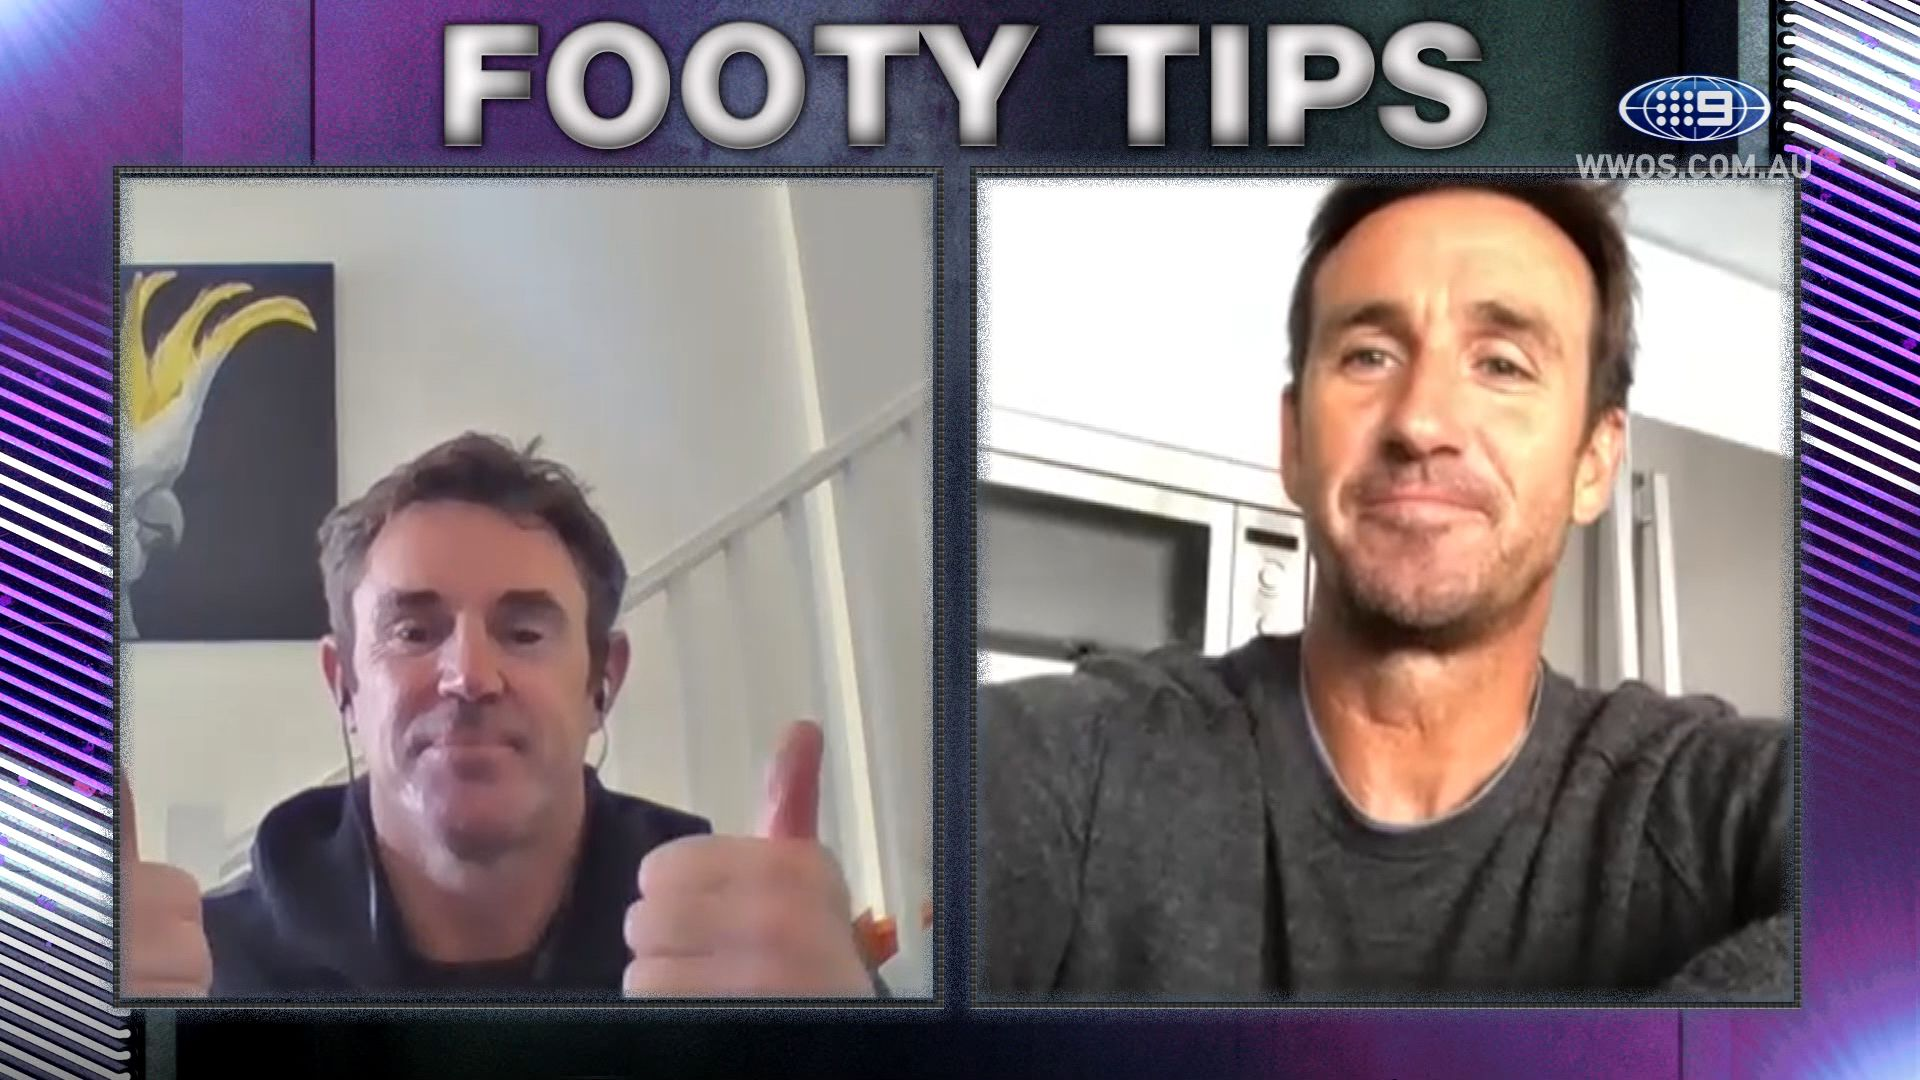 NRL Round 25 tips: Andrew Johns, Brad Fittler and Nine's experts give their predictions